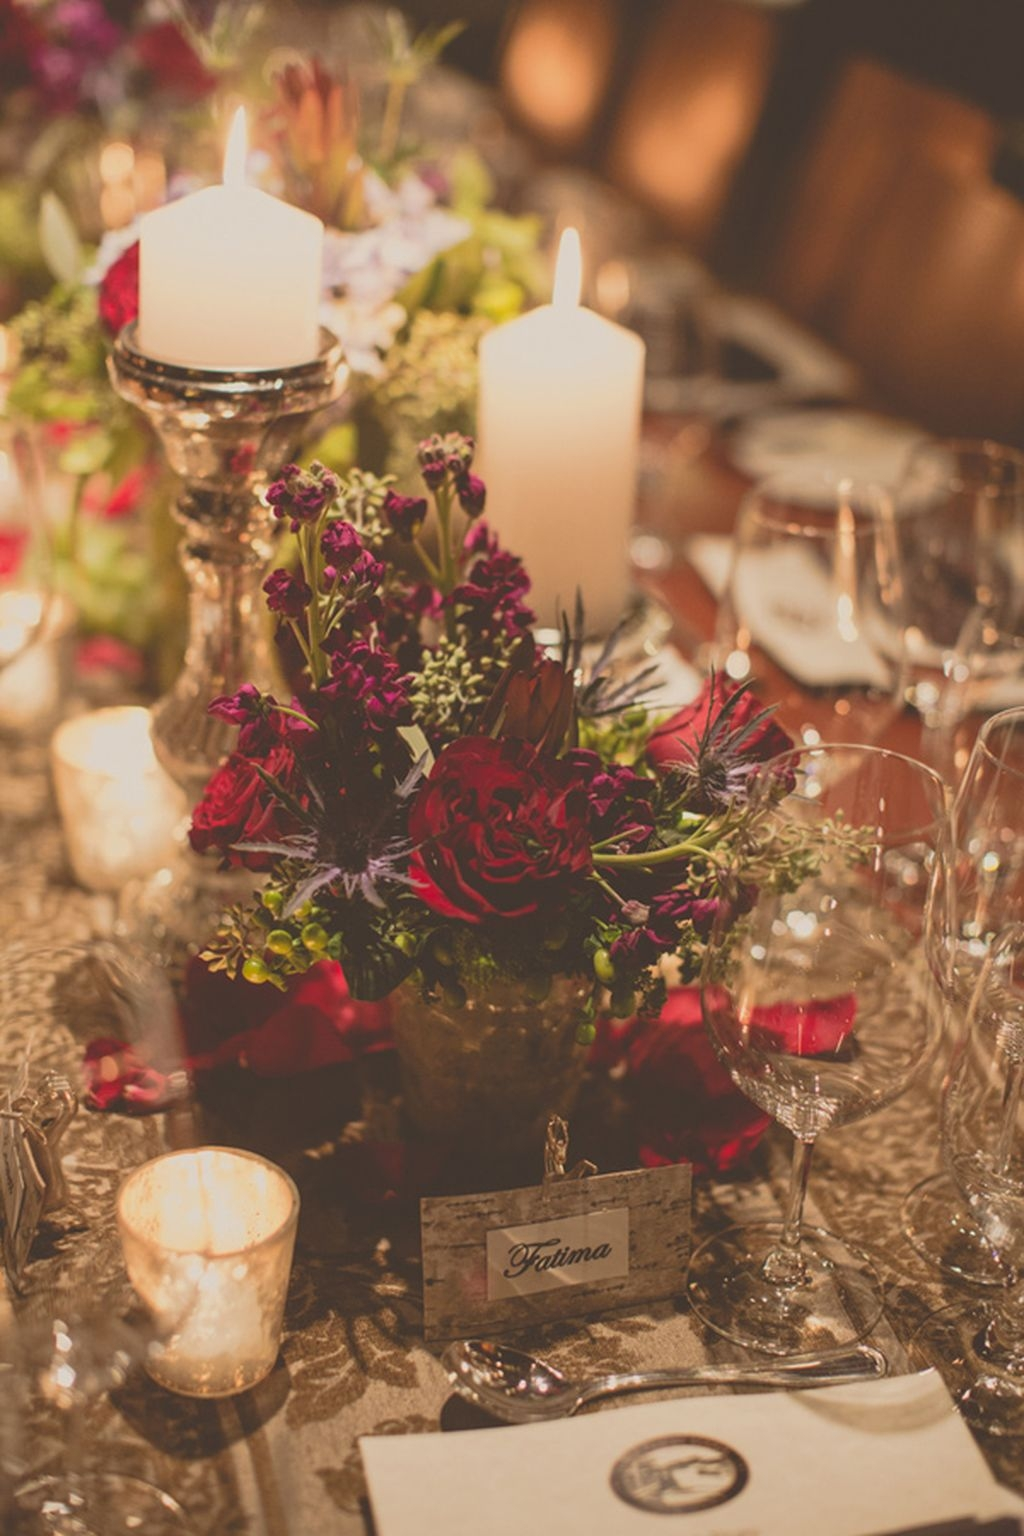 Romantic Christmas Centerpieces Ideas With Candles 27